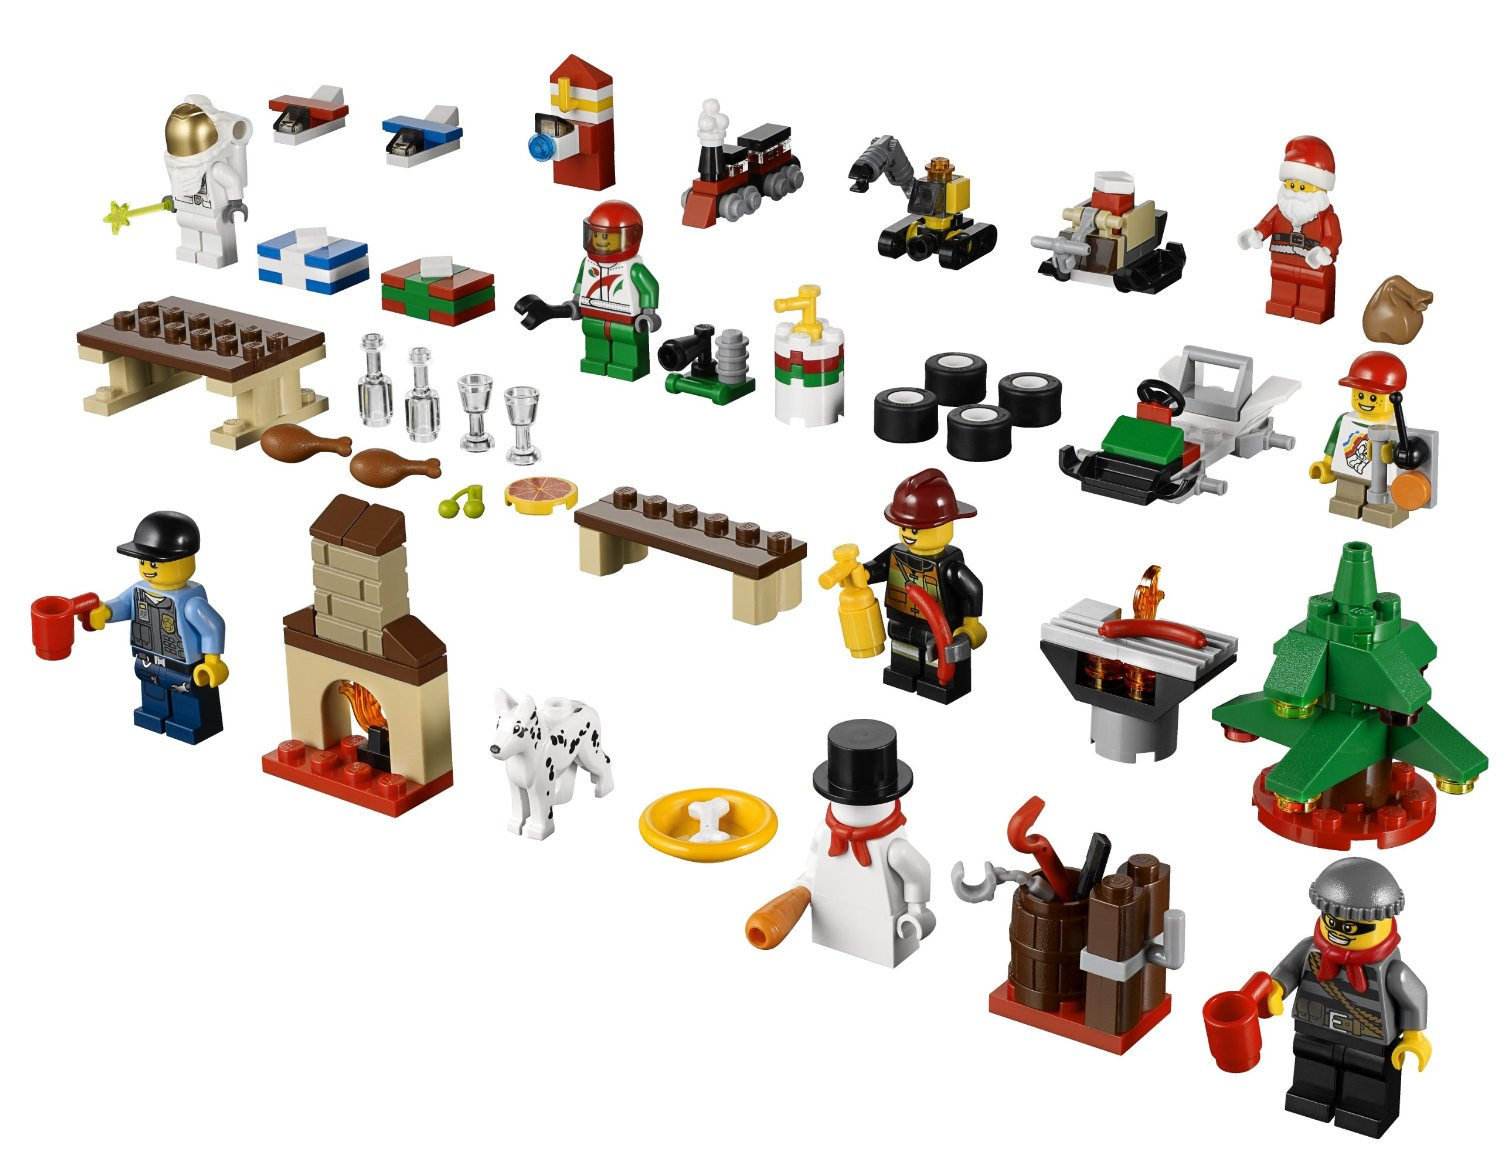 2013 LEGO City Advent Calendar 60024 Set Released in Stores! - Bricks ...